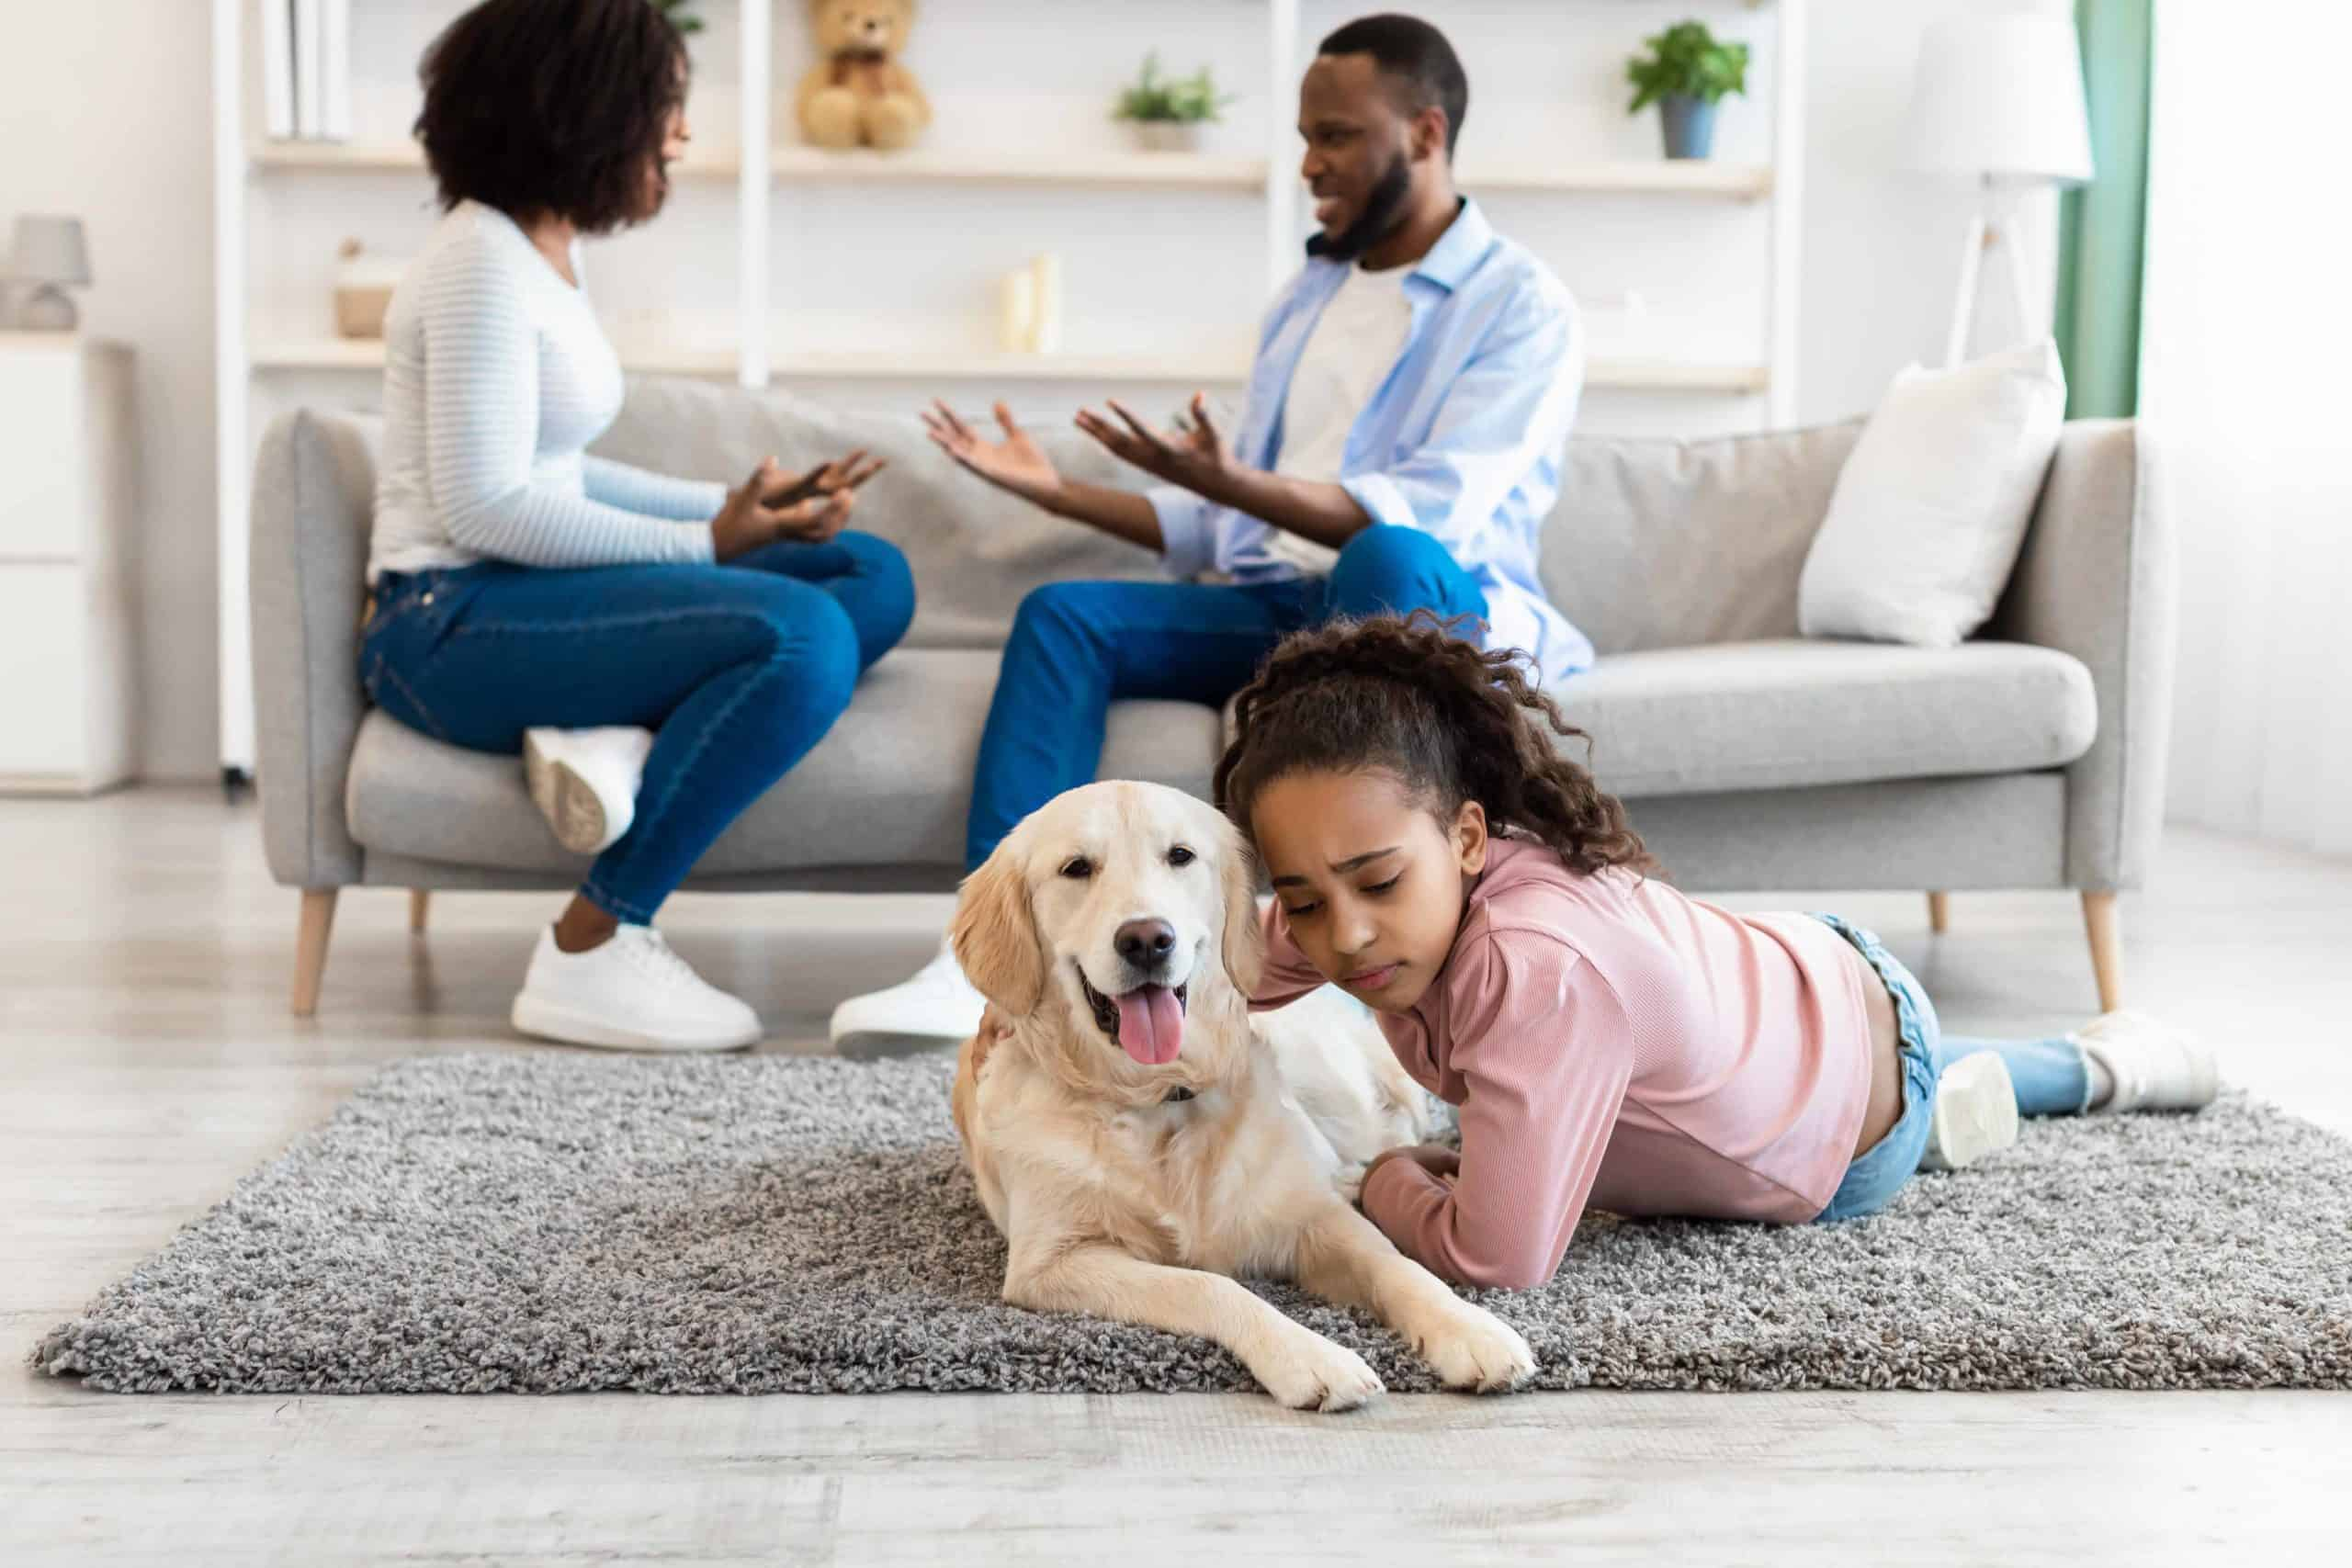 Sad girl hugs Labrador retriever while parents fight in the background. Navigating pet ownership during divorce can be difficult since there are no clear-cut rules in place about what's supposed to happen.